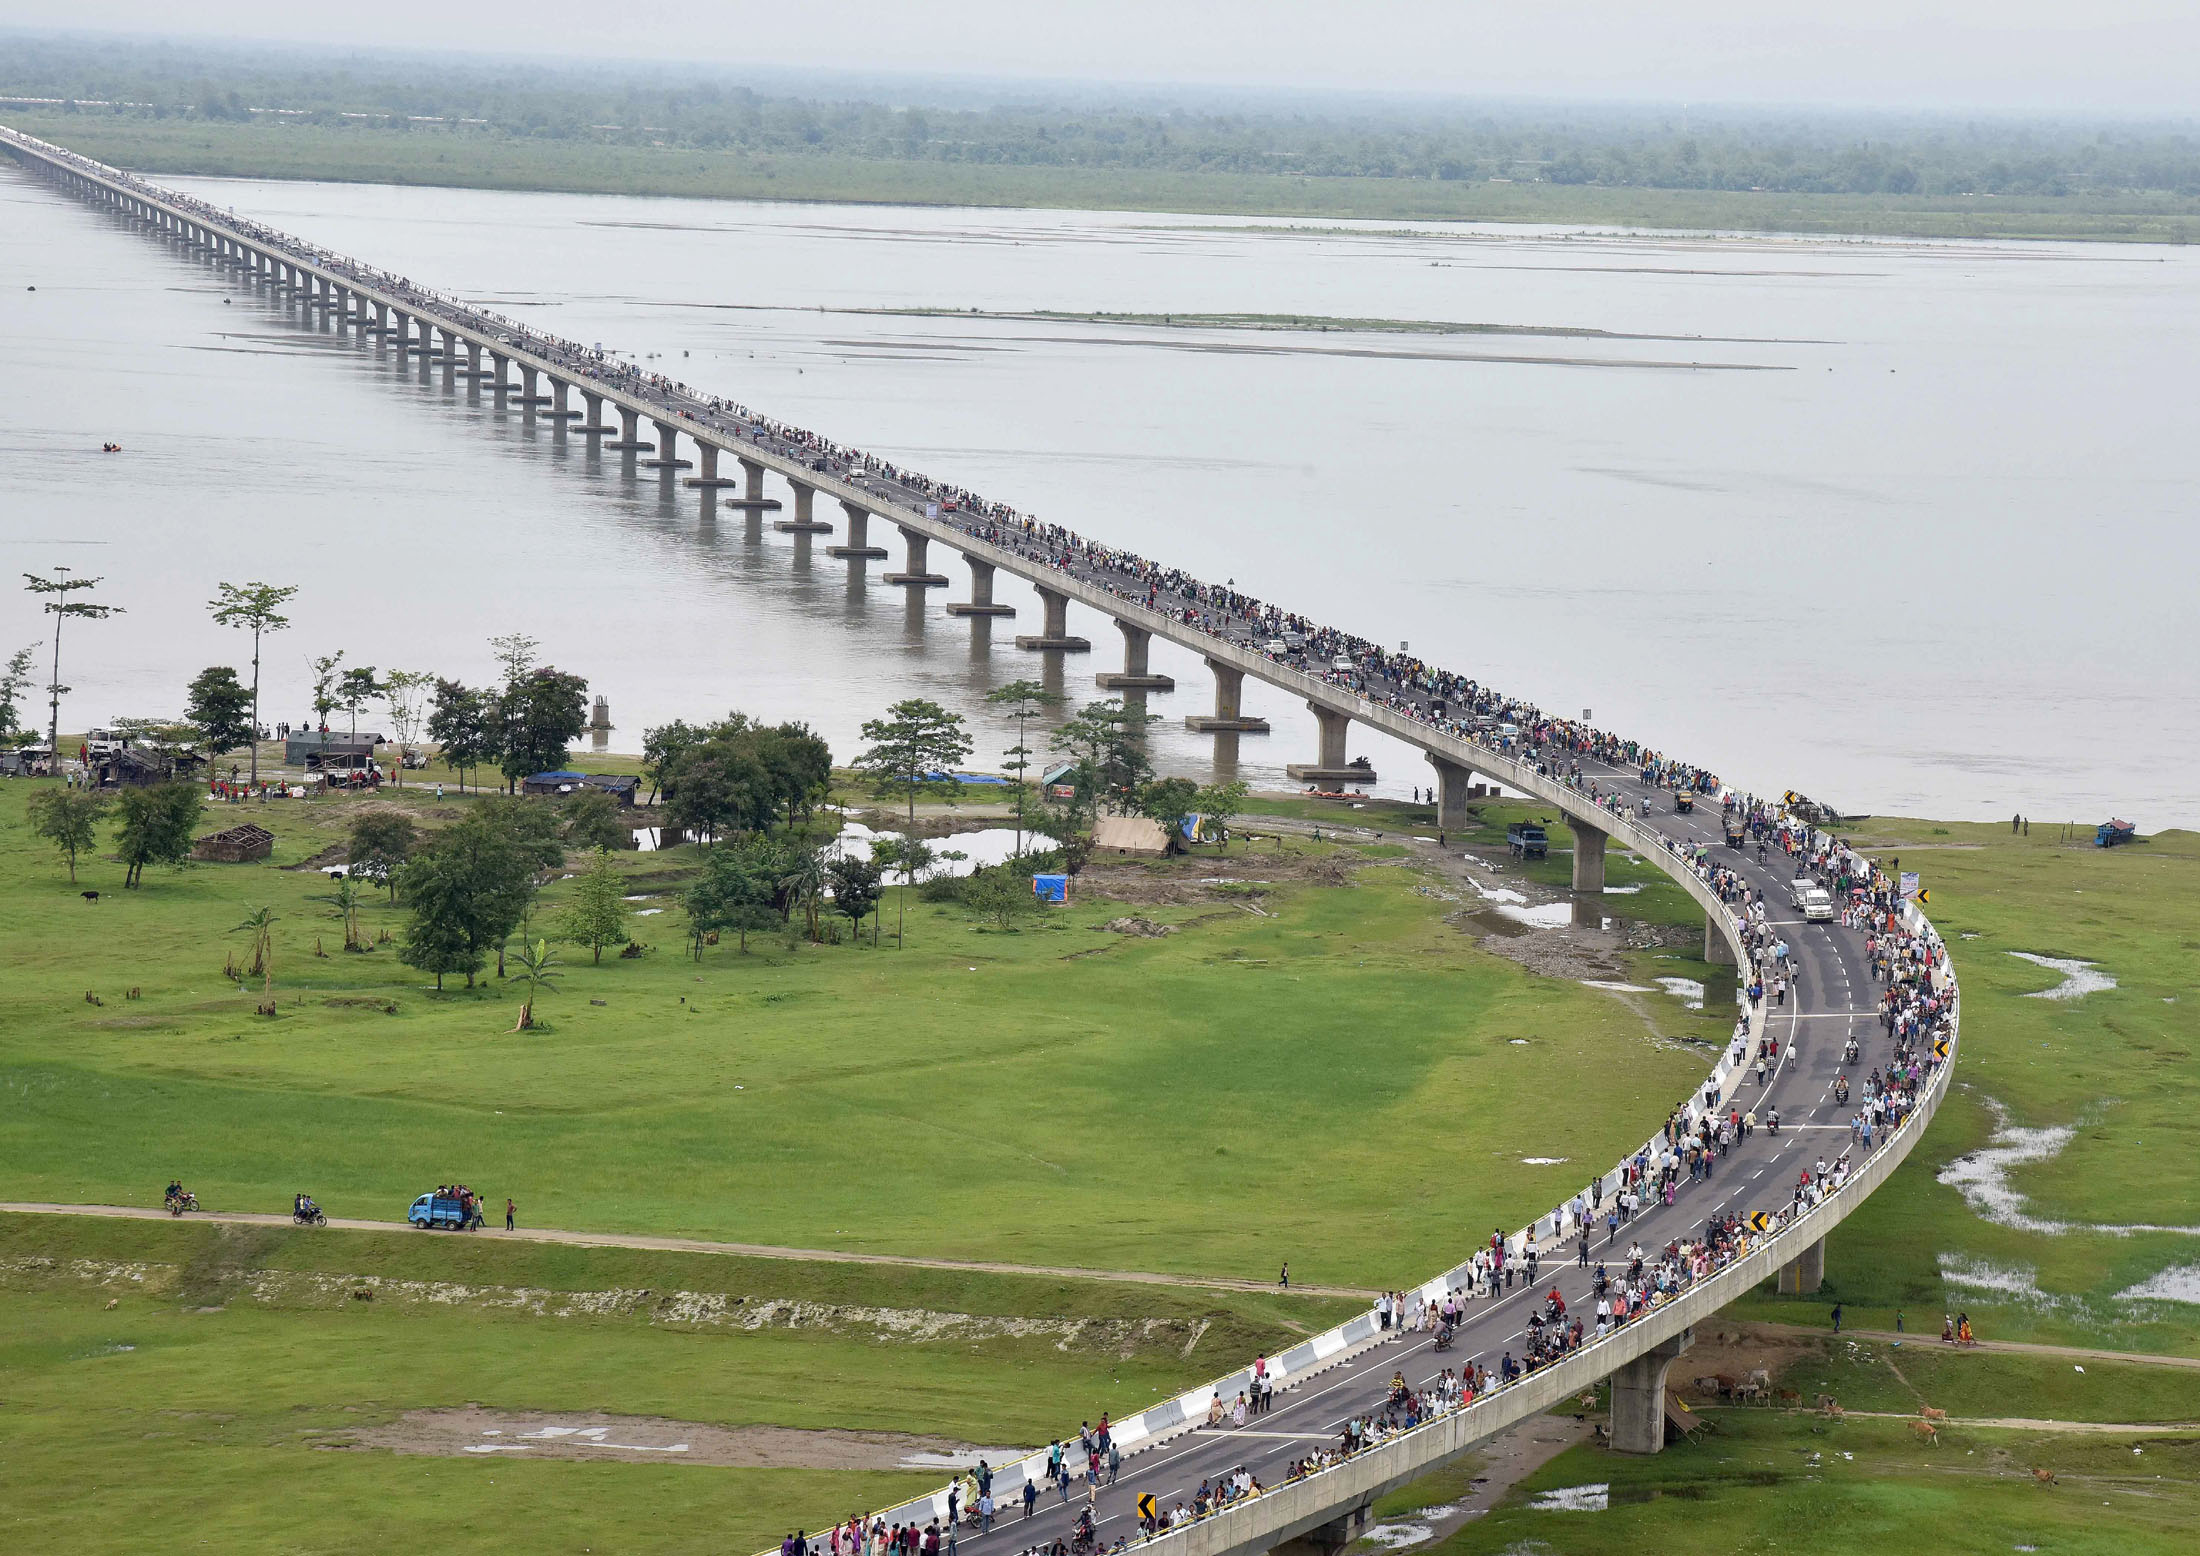 India is fast-tracking roads network projects in the North East. An aerial view of the Dhola-Sadiya bridge across River Brahmaputra, inaugurated by the Prime MinisterNarendra Modi, in Assam on May 26, 2017.